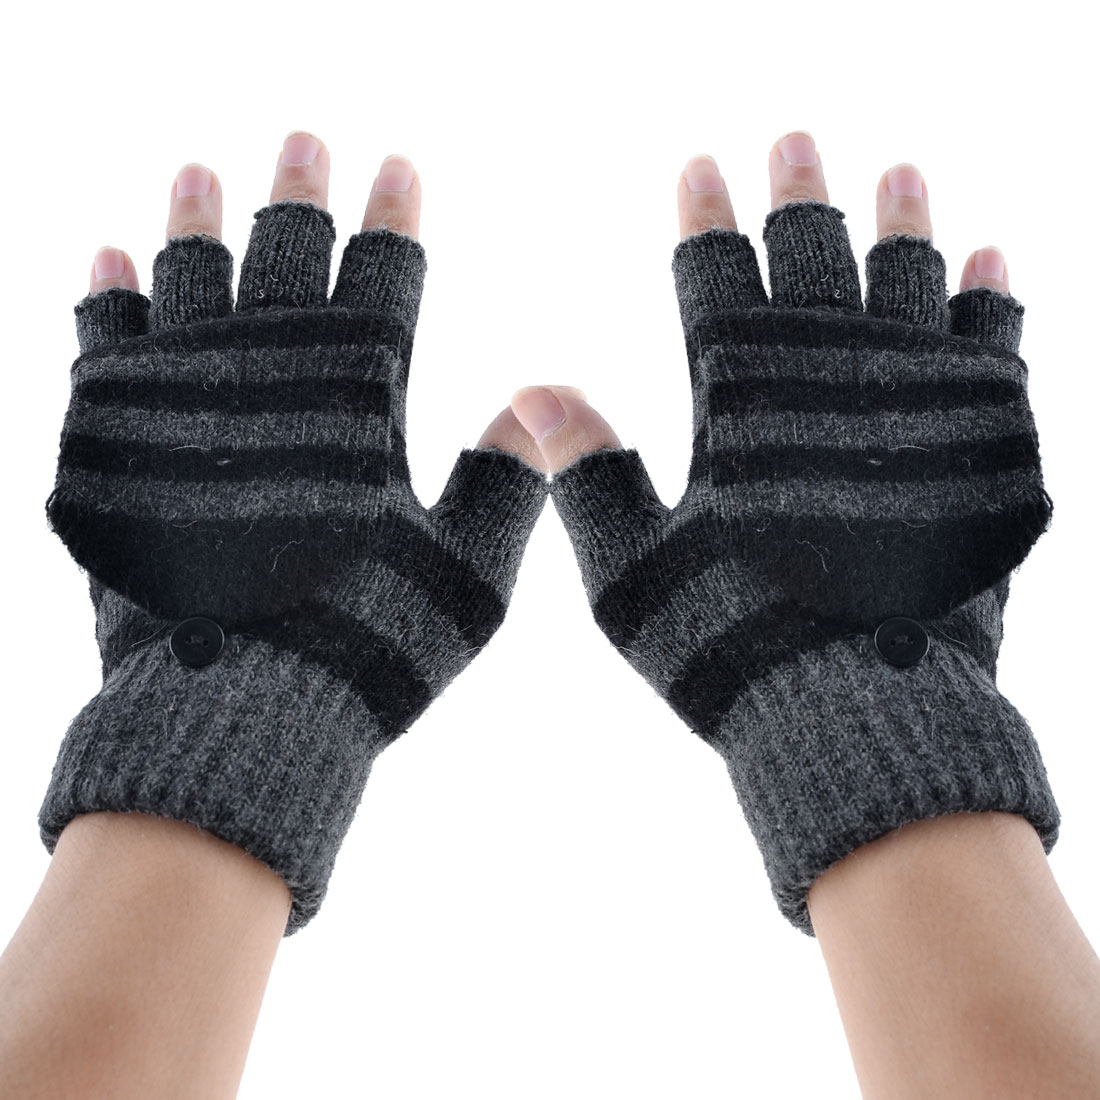 Stripe Ribbed Knitting Flap Cover Fingerless Gloves Black Pair for Unisex